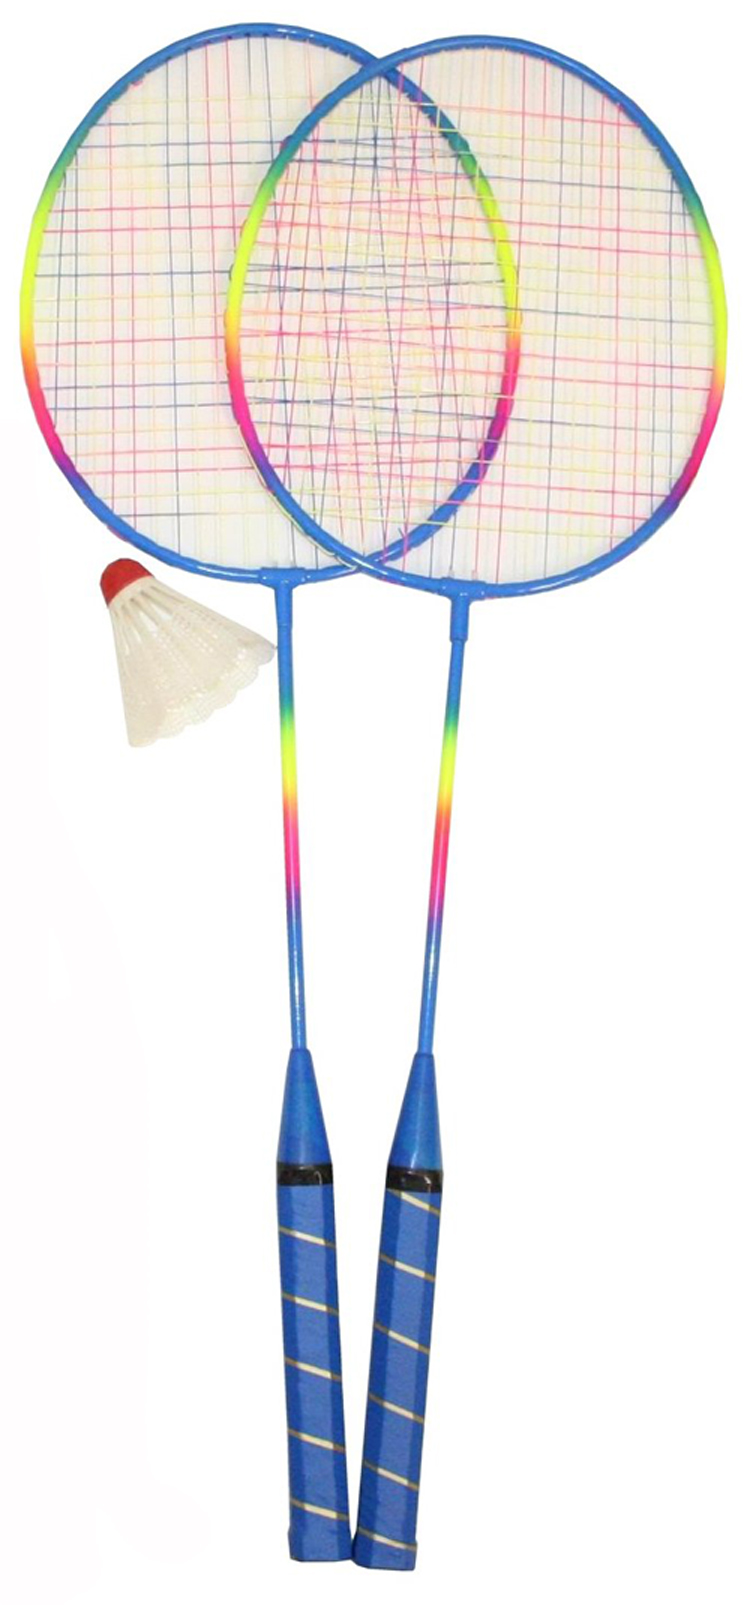 2 Player Badminton Set